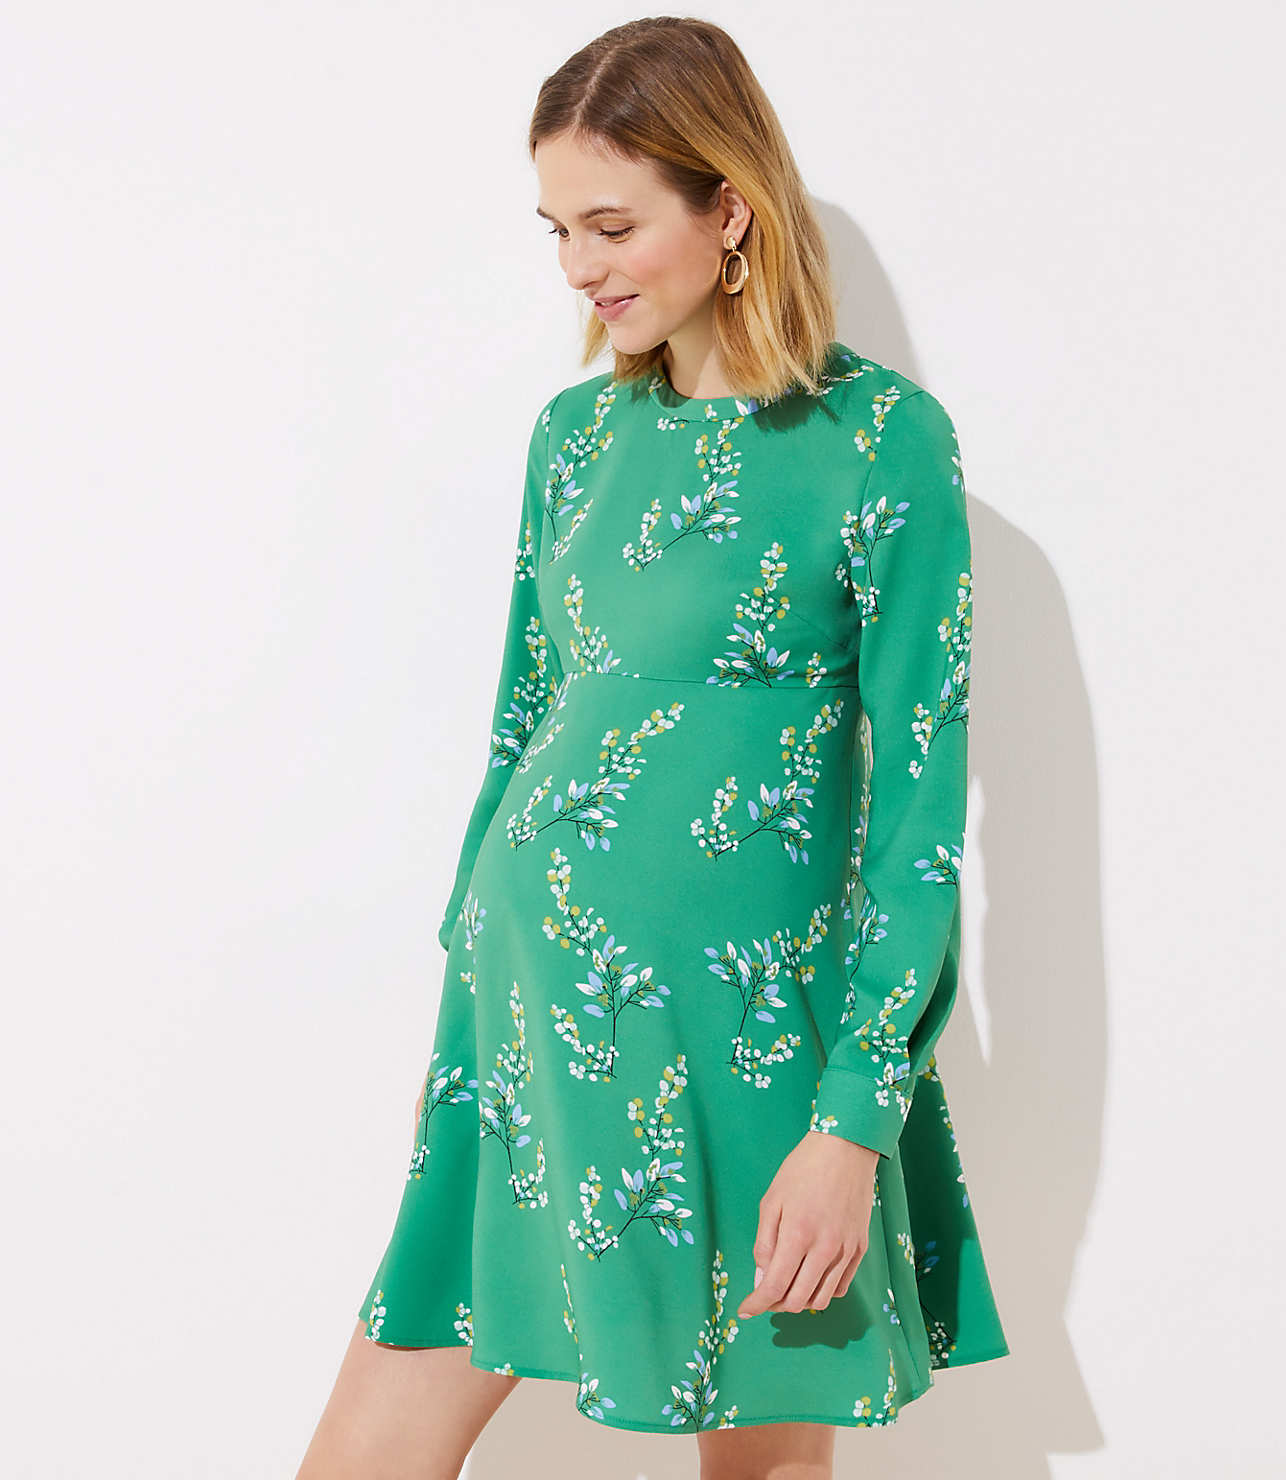 Petite Maternity Clothes How To Shop Smart